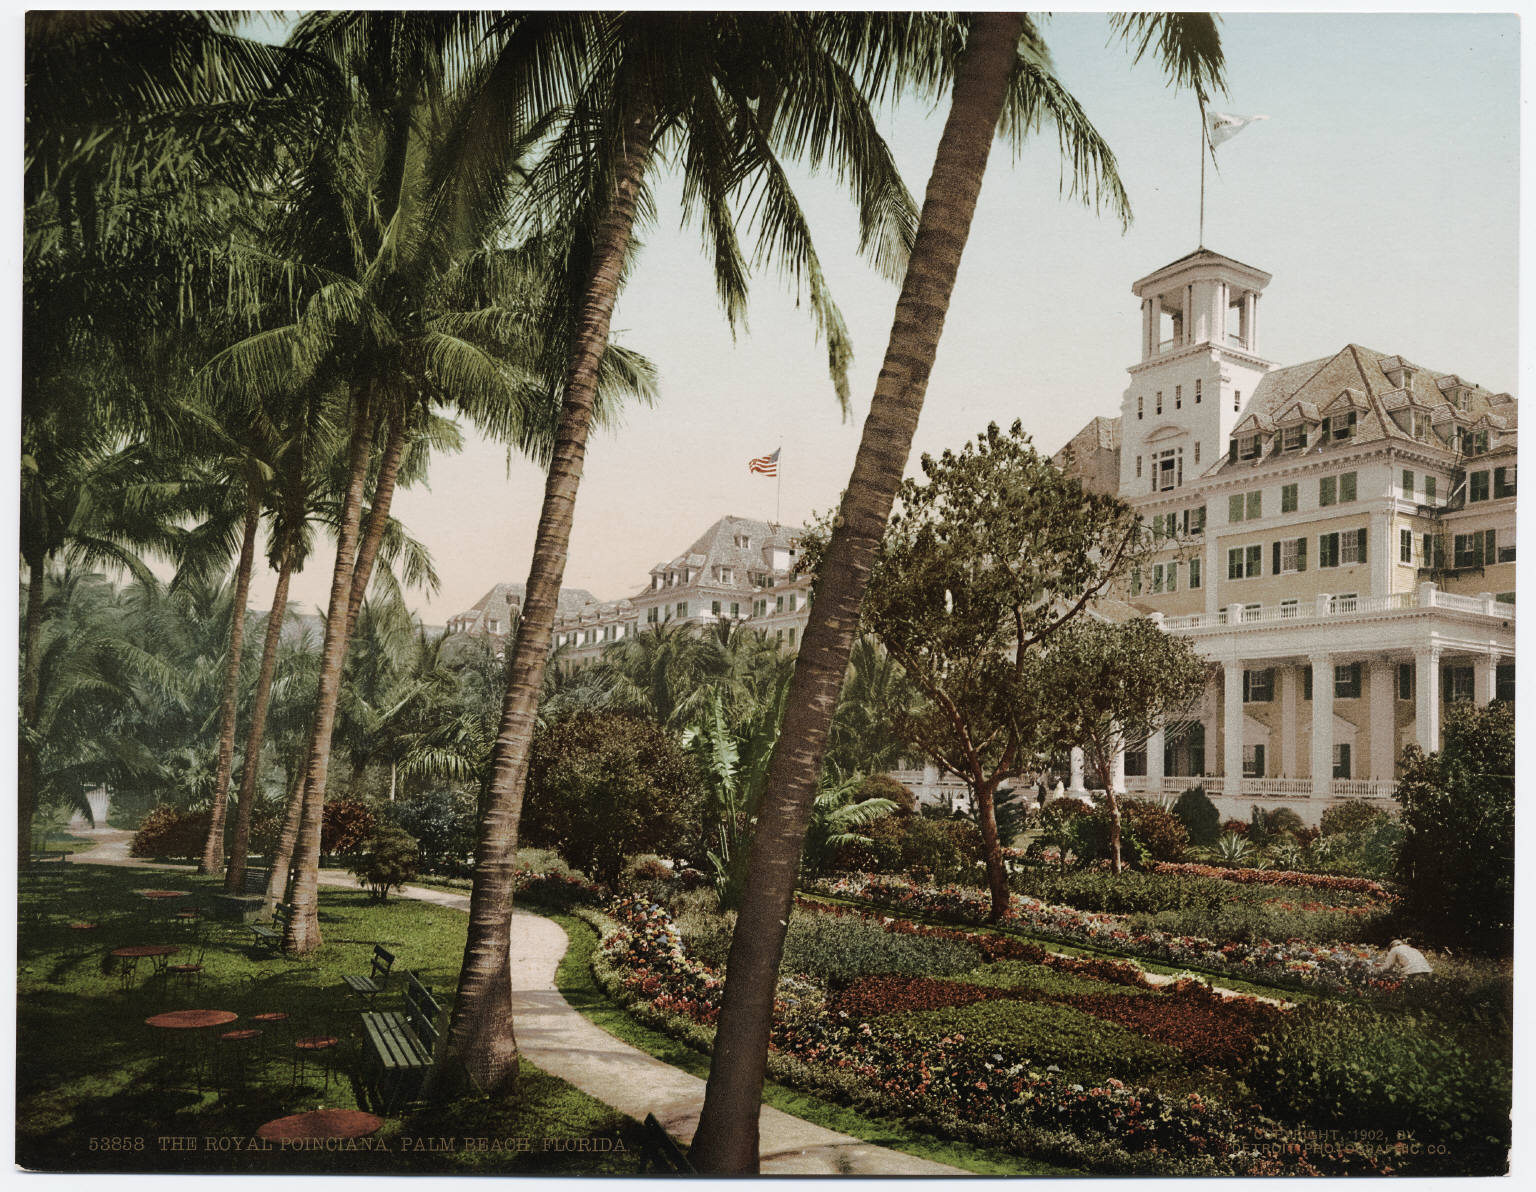 The Hrp Hotel Royal Poinciana Circa 1900 Main Entrance To Was Here On West Side Facing Lake This Picture Taken From South